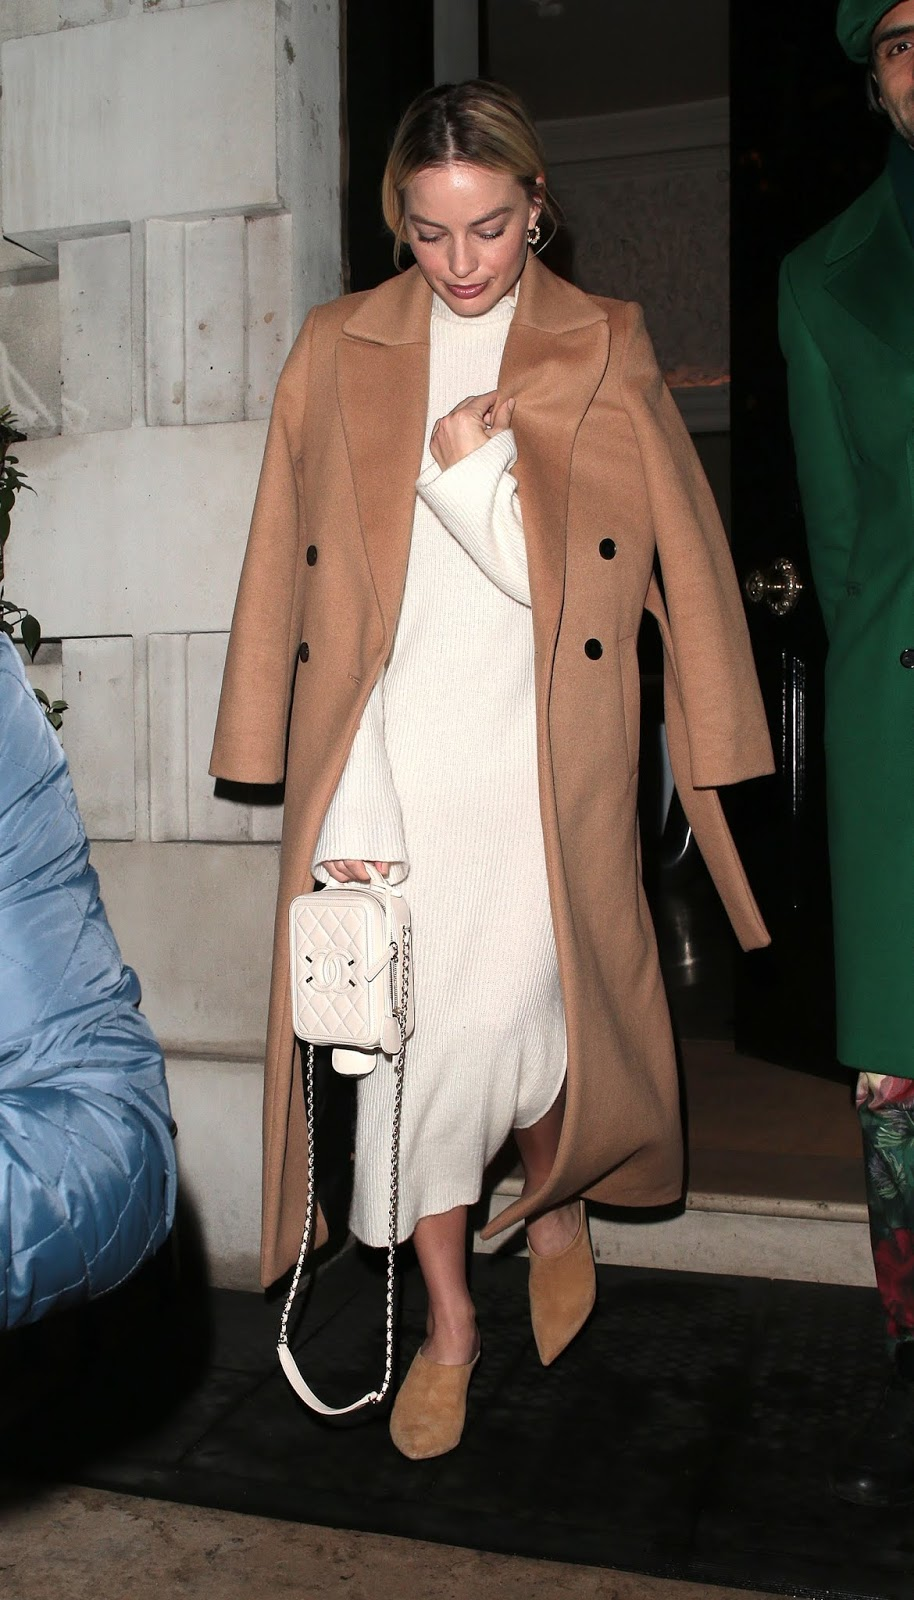 Margot Robbie's Minimal, Neutral Outfit Is Perfection